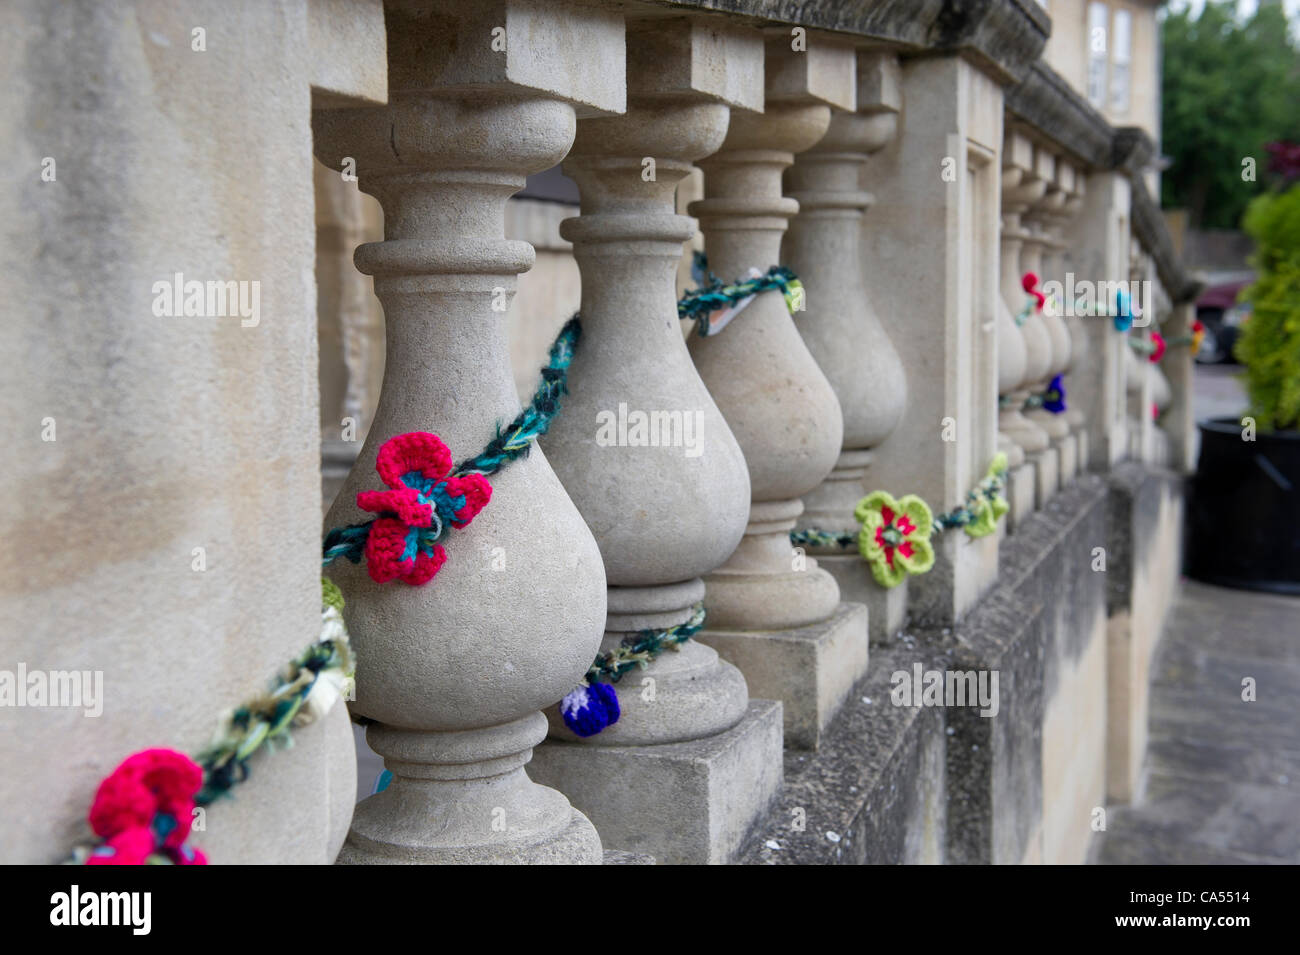 June 9th 2012. International Yarn Bombing Day. Decorative flowers left on the pillars at the front of the Town Hall Stock Photo